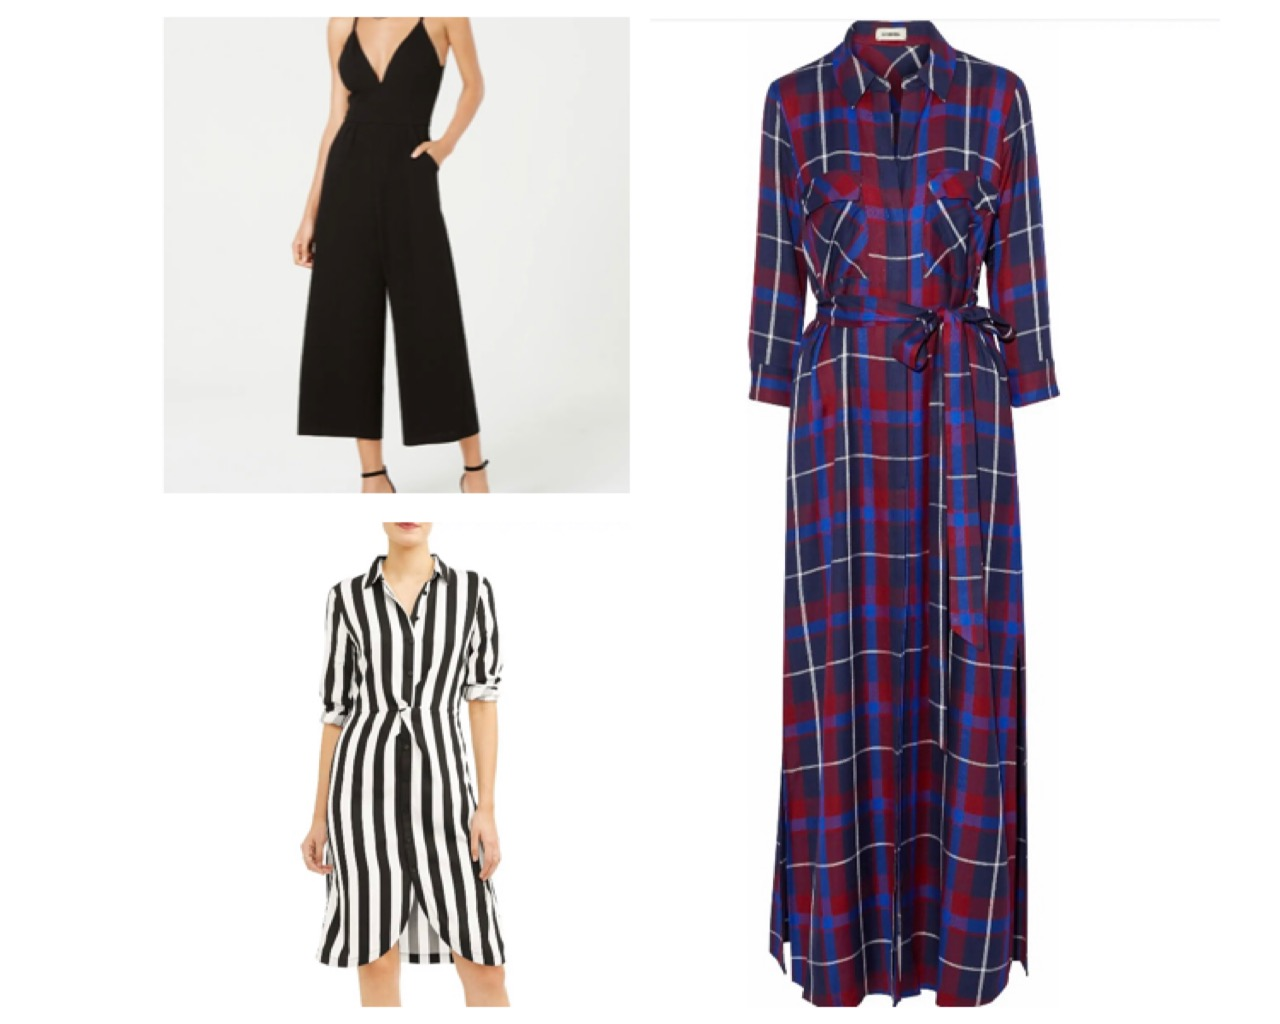 We love dresses or jumpsuits, just slip on some heels or flats and tada, simple but chic outfit. Available in our app